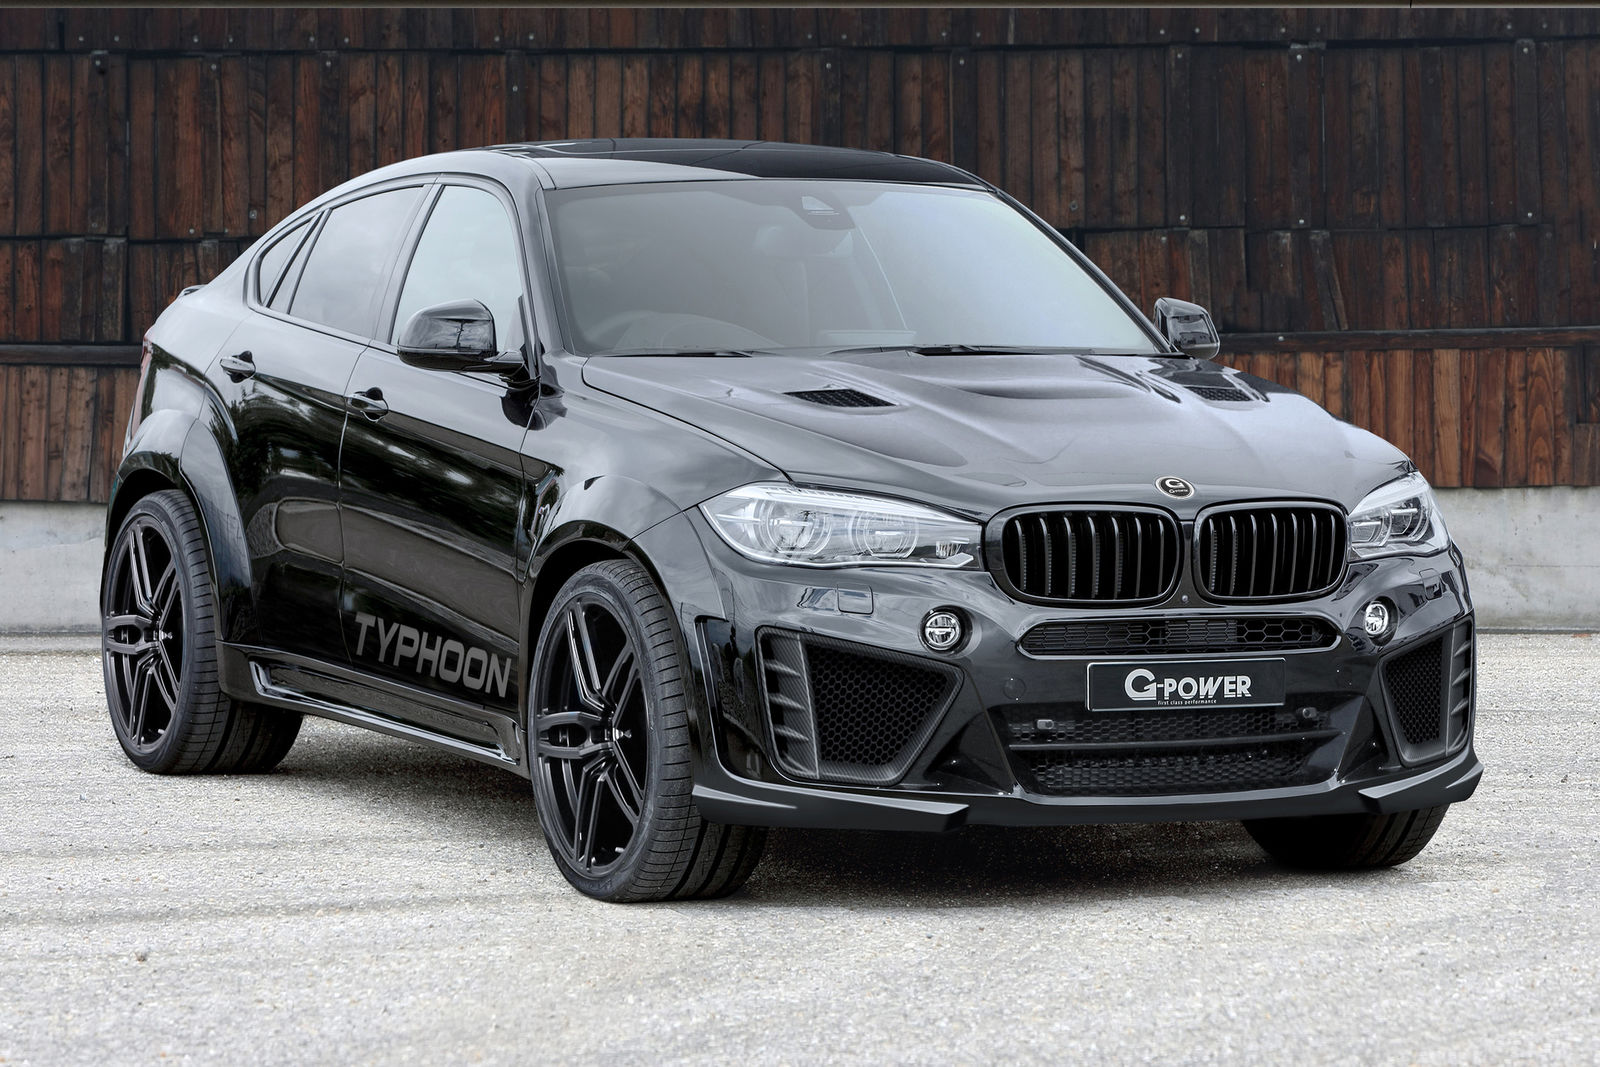 G Power Bmw X6 M Typhoon 750 Ps Und Tuning Bodykit